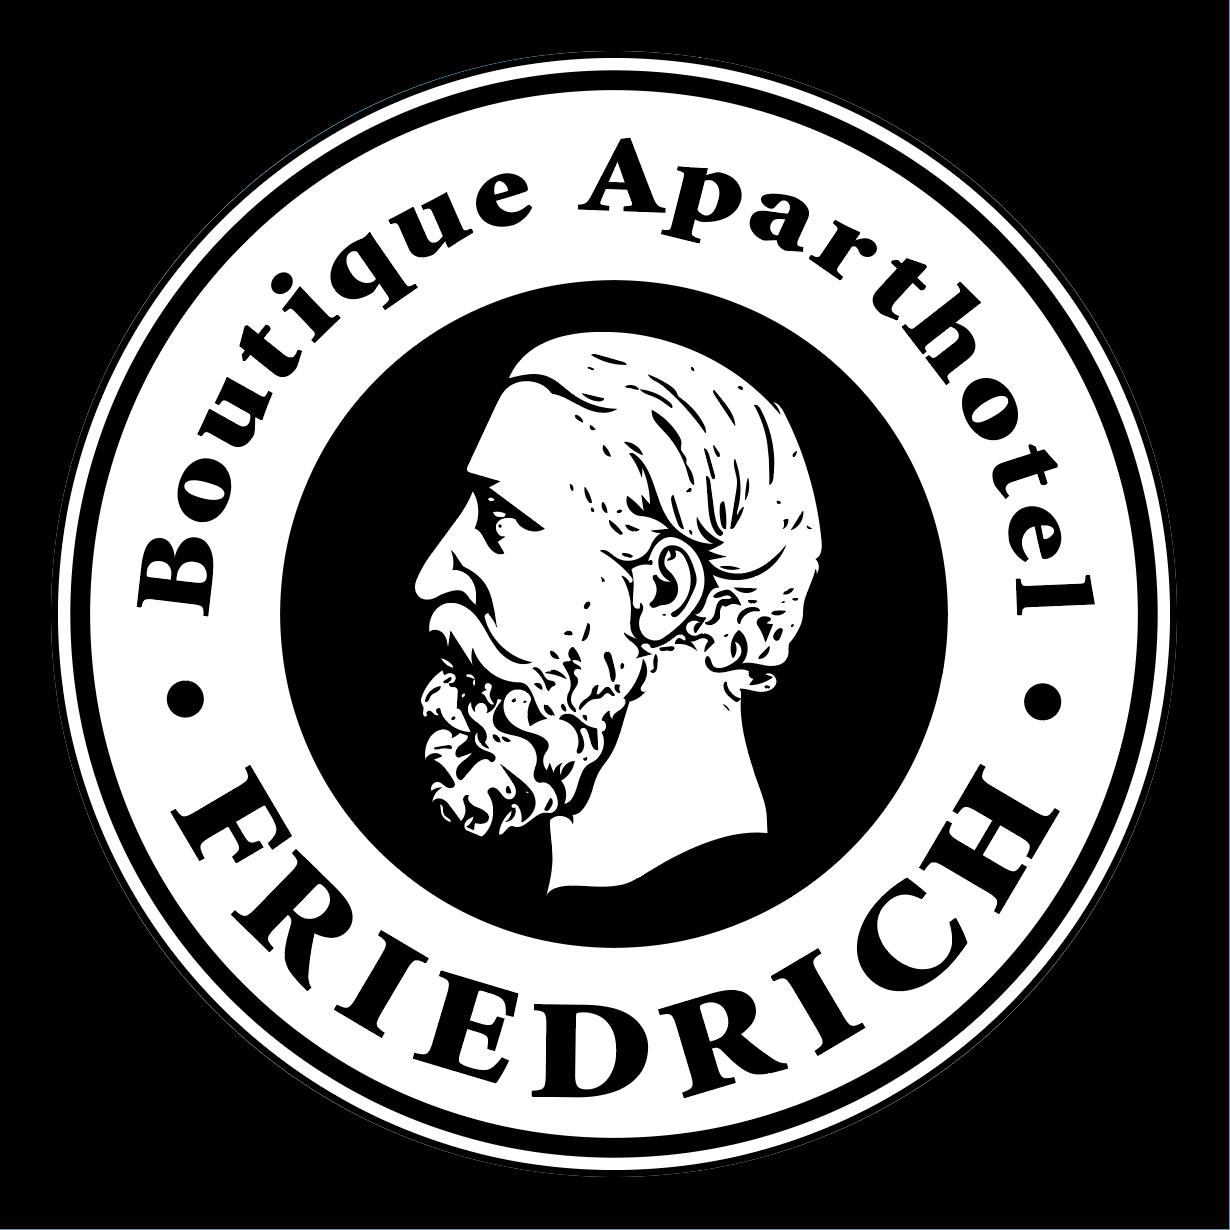 Friedrich Boutique-Apartments